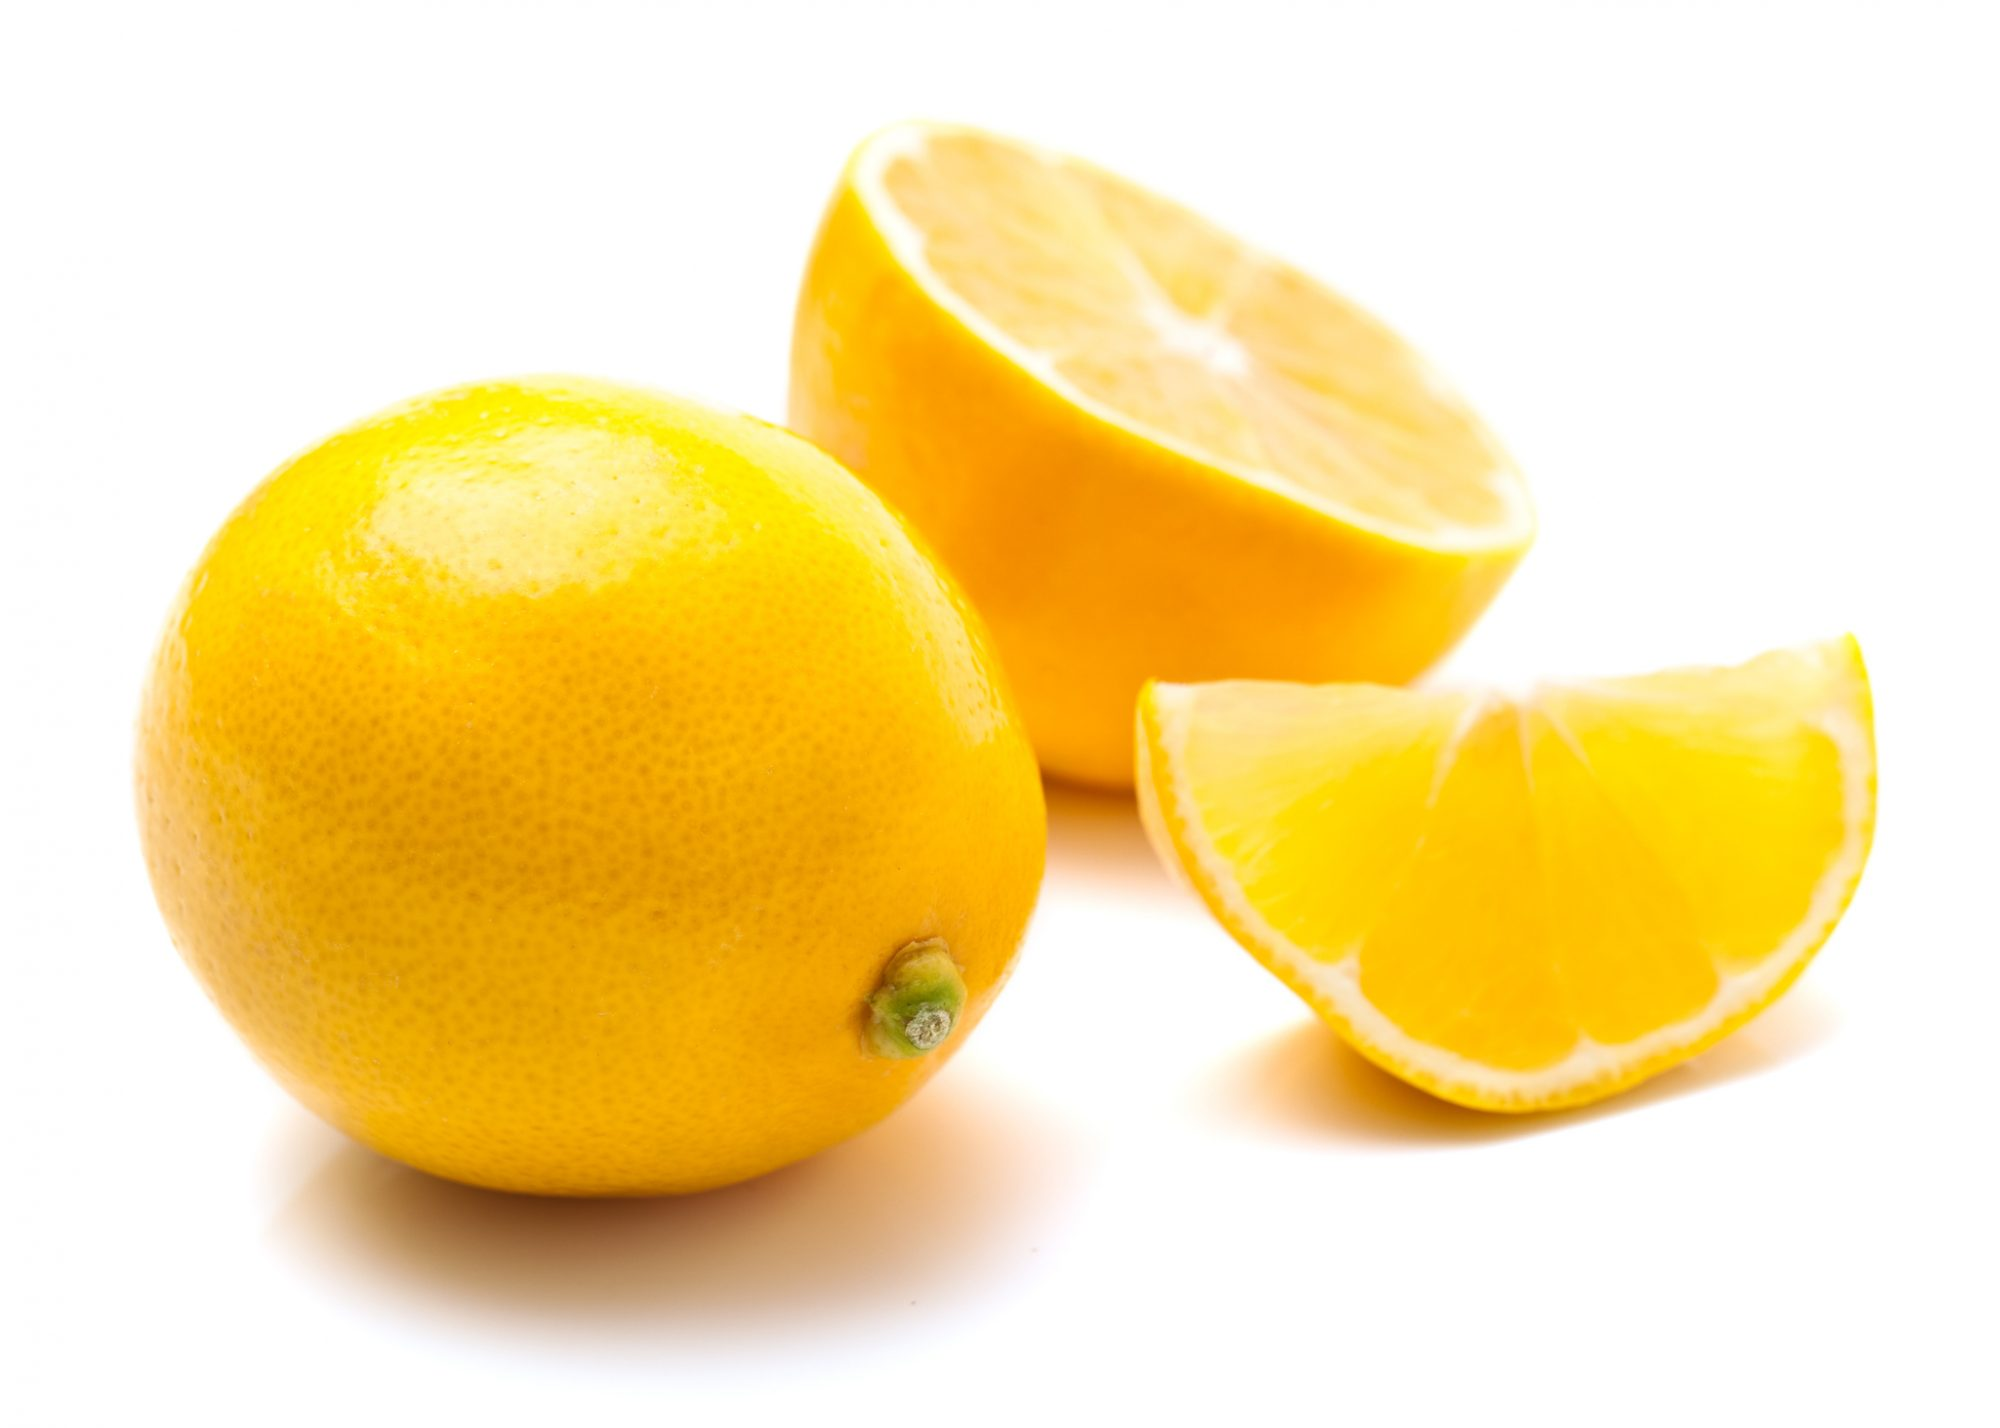 Meyer lemon image